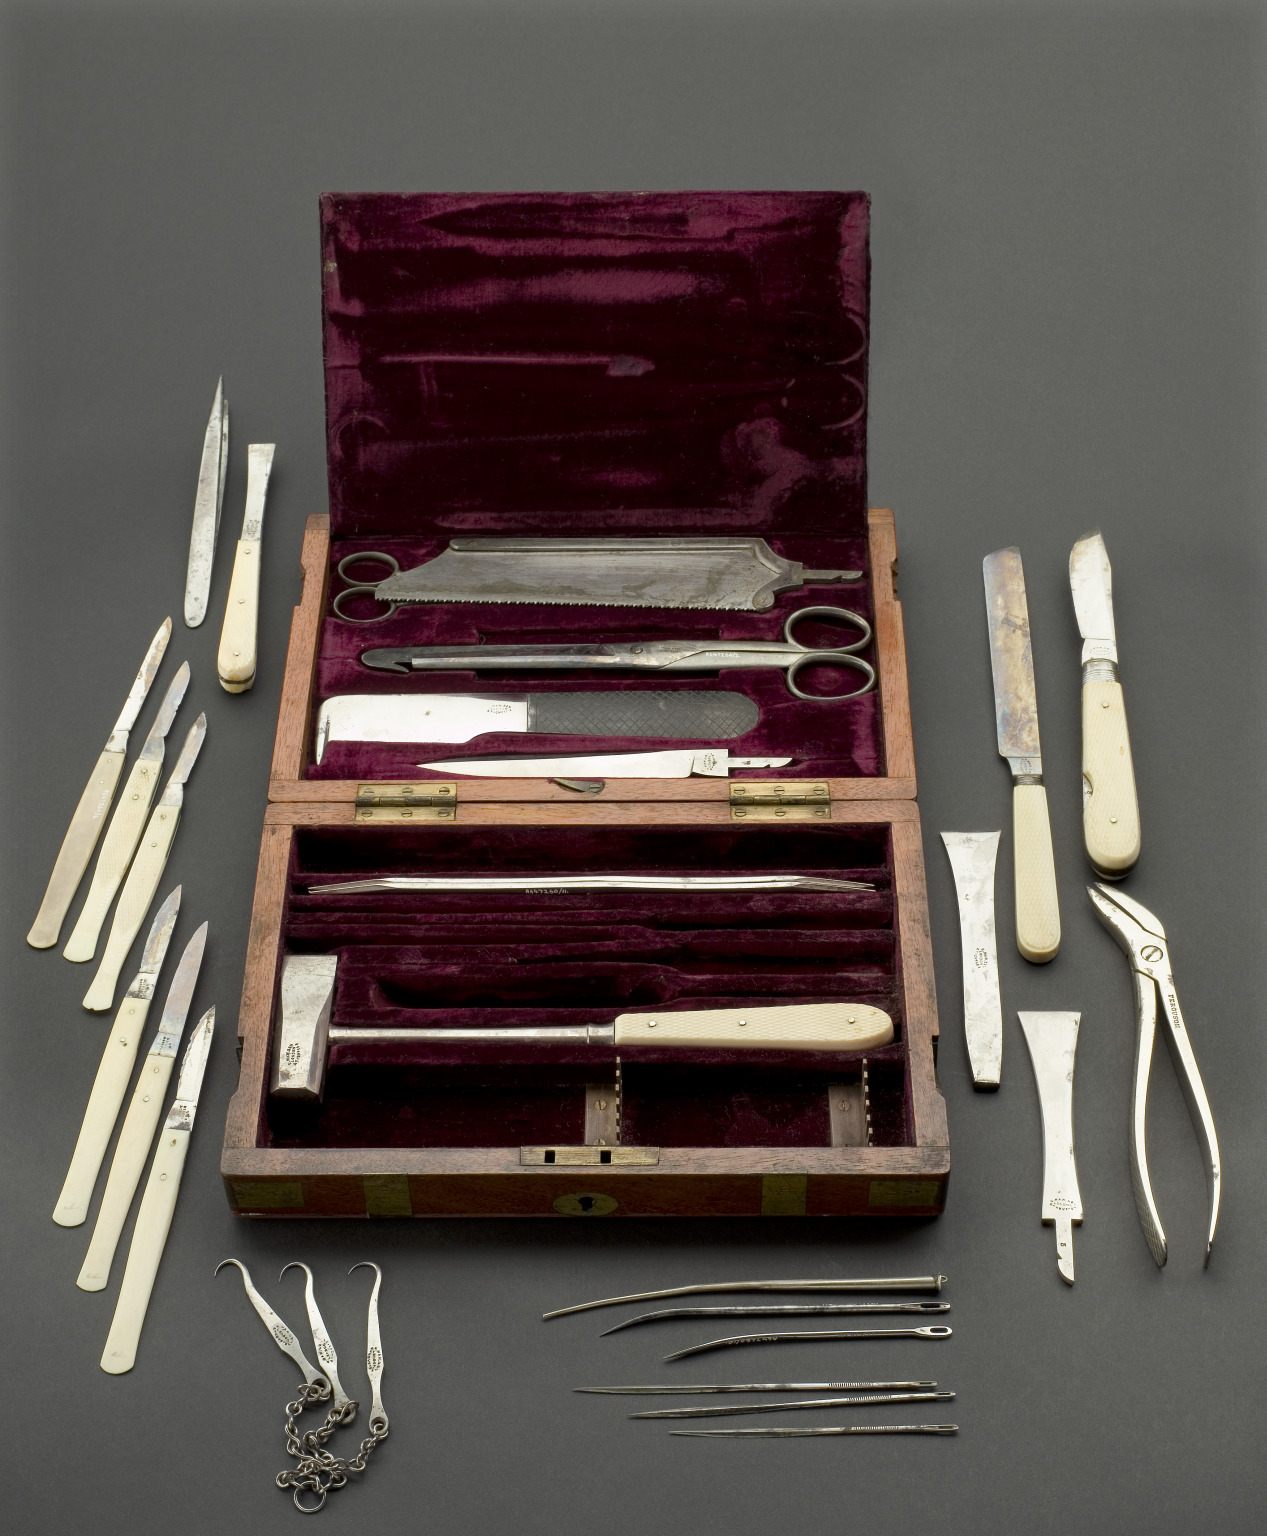 Made From Steel With Ivory Handles, The Set Contains